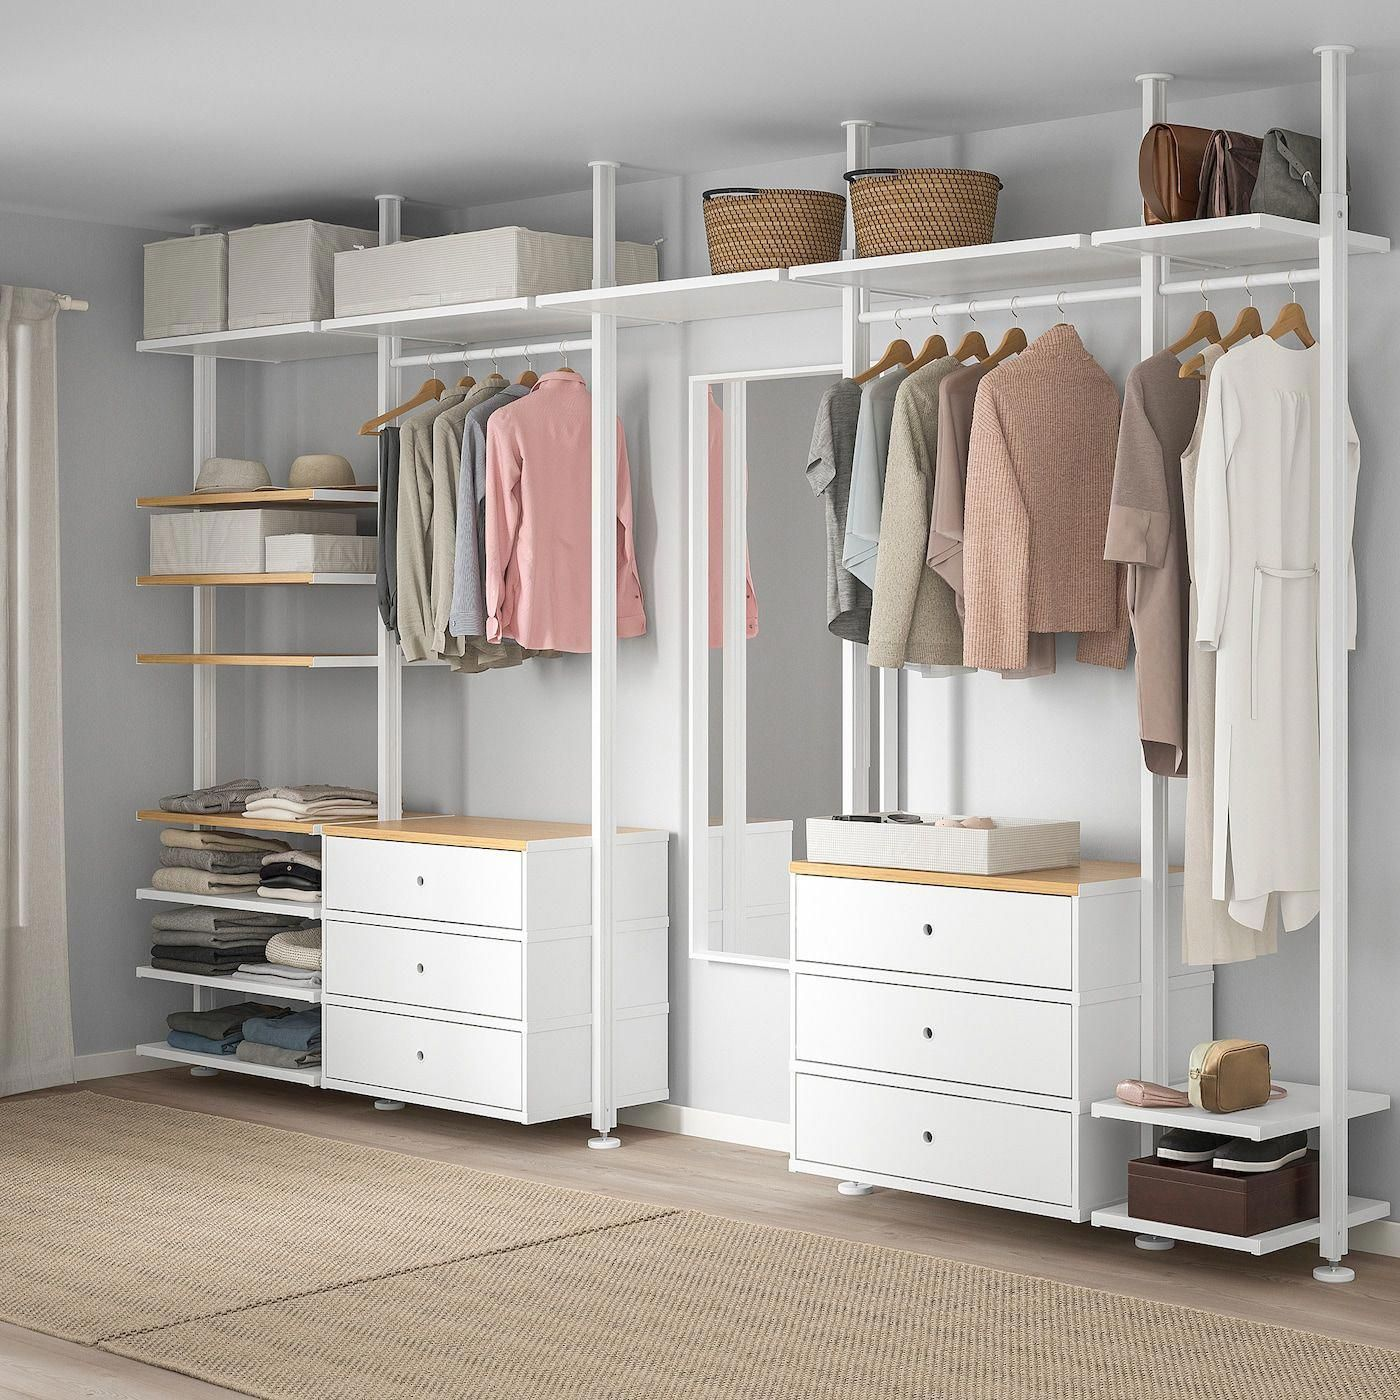 Pin By A S Pettersson On Sovrumsideer In 2020 Arranging Bedroom Furniture No Closet Solutions Closet Bedroom